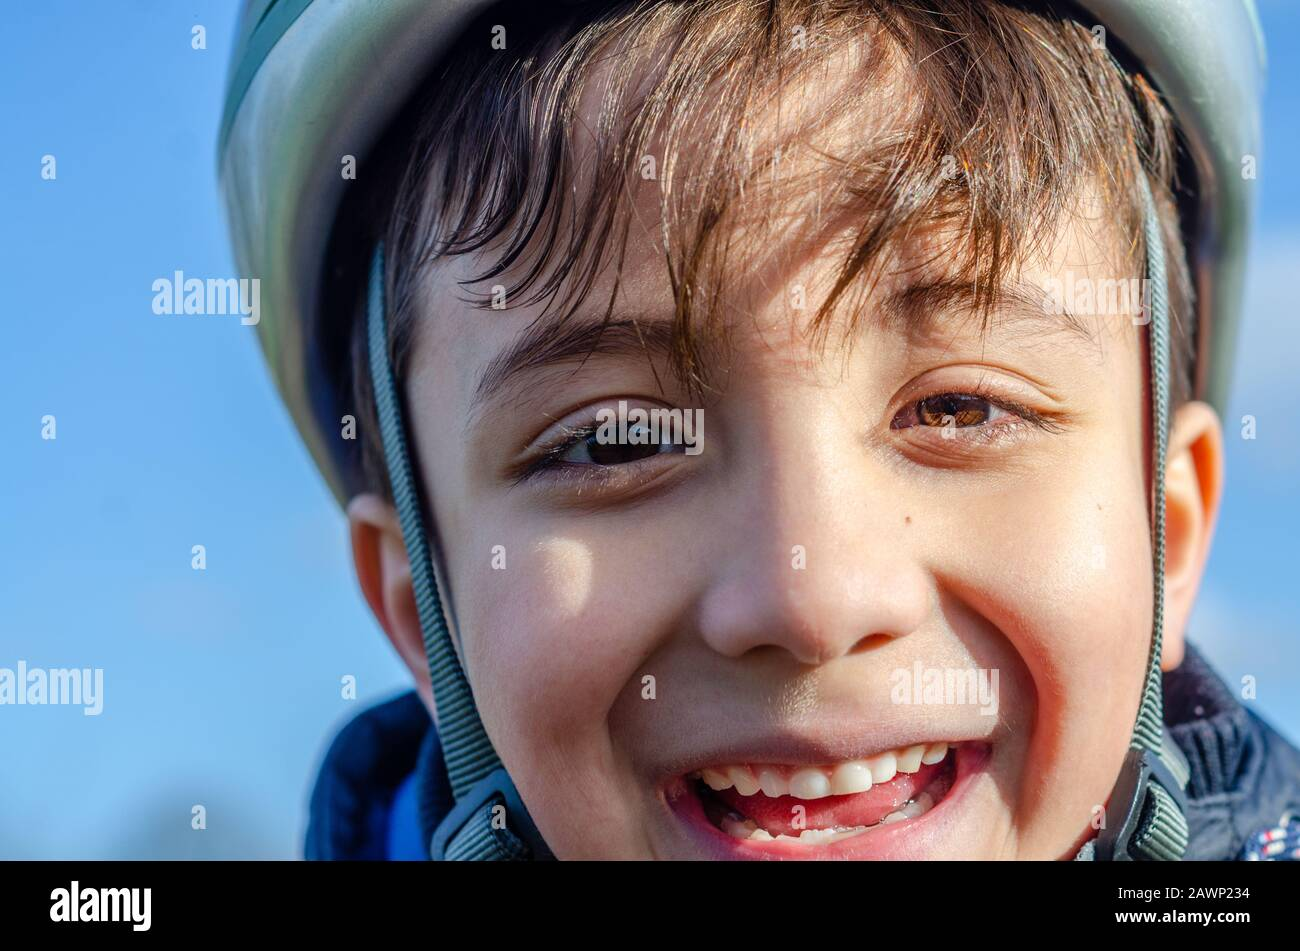 portrait-of-a-young-boy-outdoors-wearing-a-bicycle-helmet-and-smiling-2AWP234.jpg